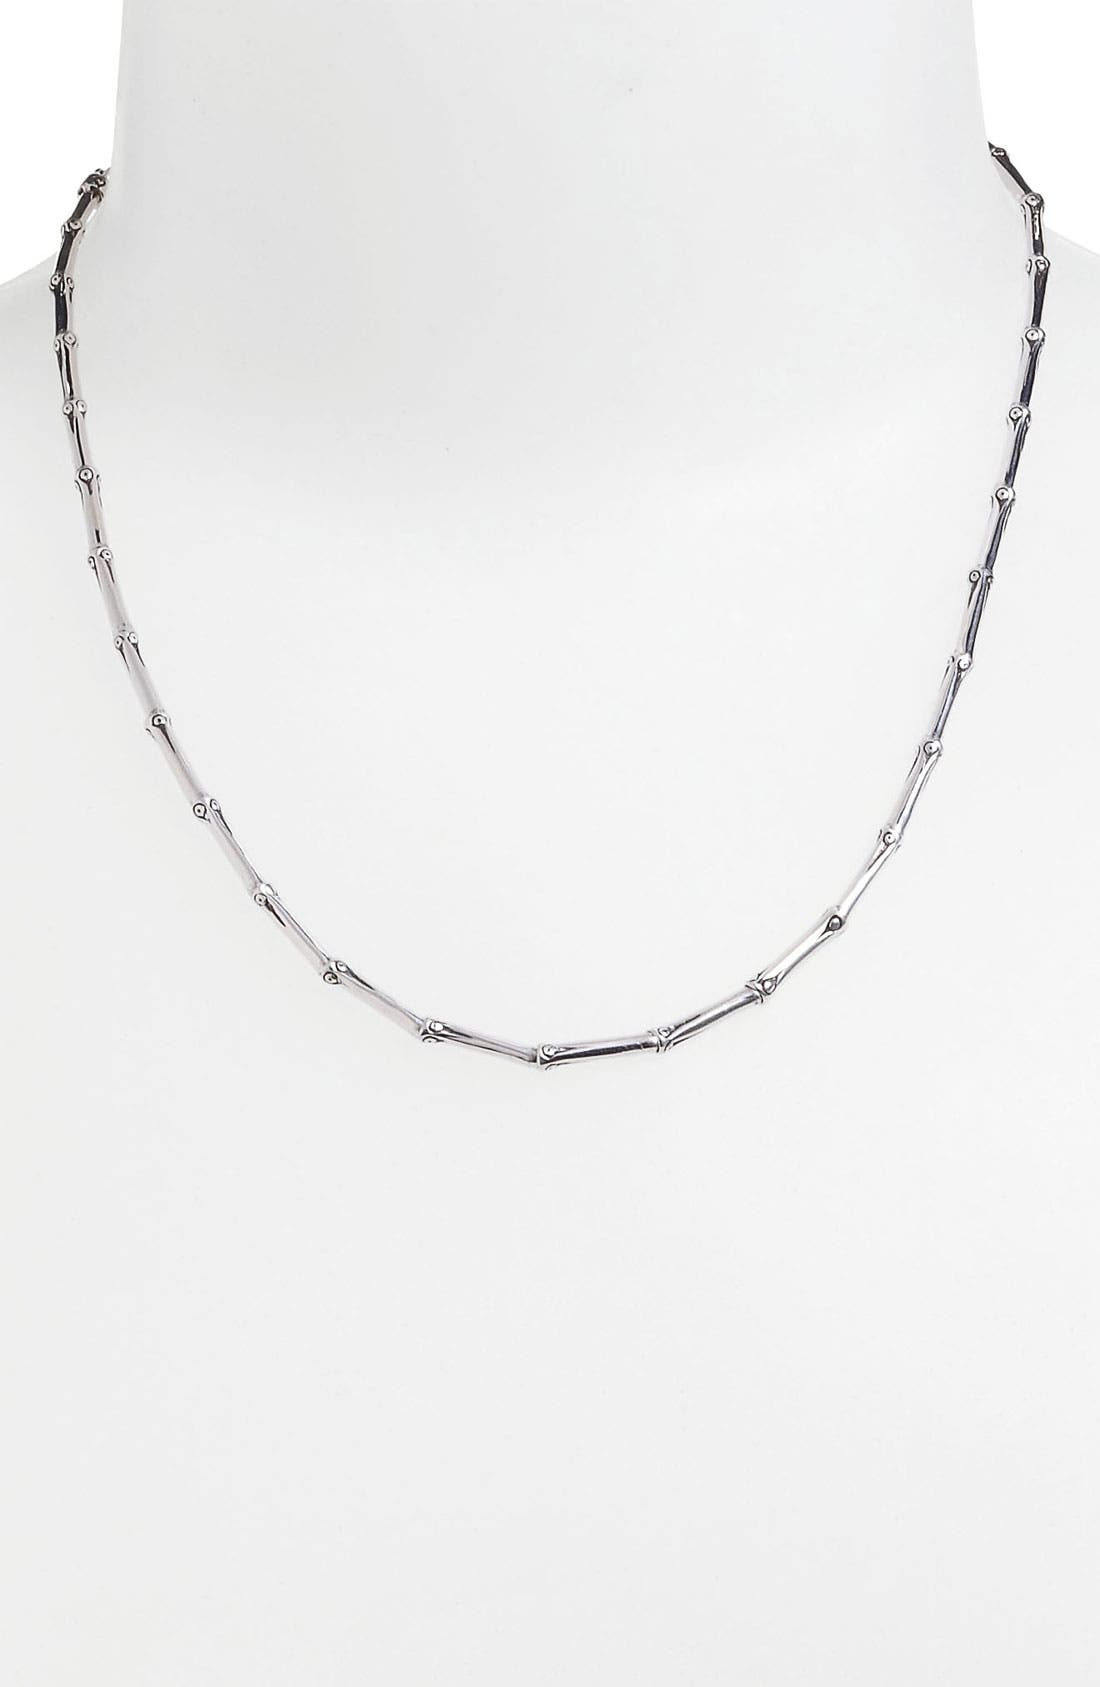 Alternate Image 1 Selected - John Hardy 'Bamboo' Single Row Necklace